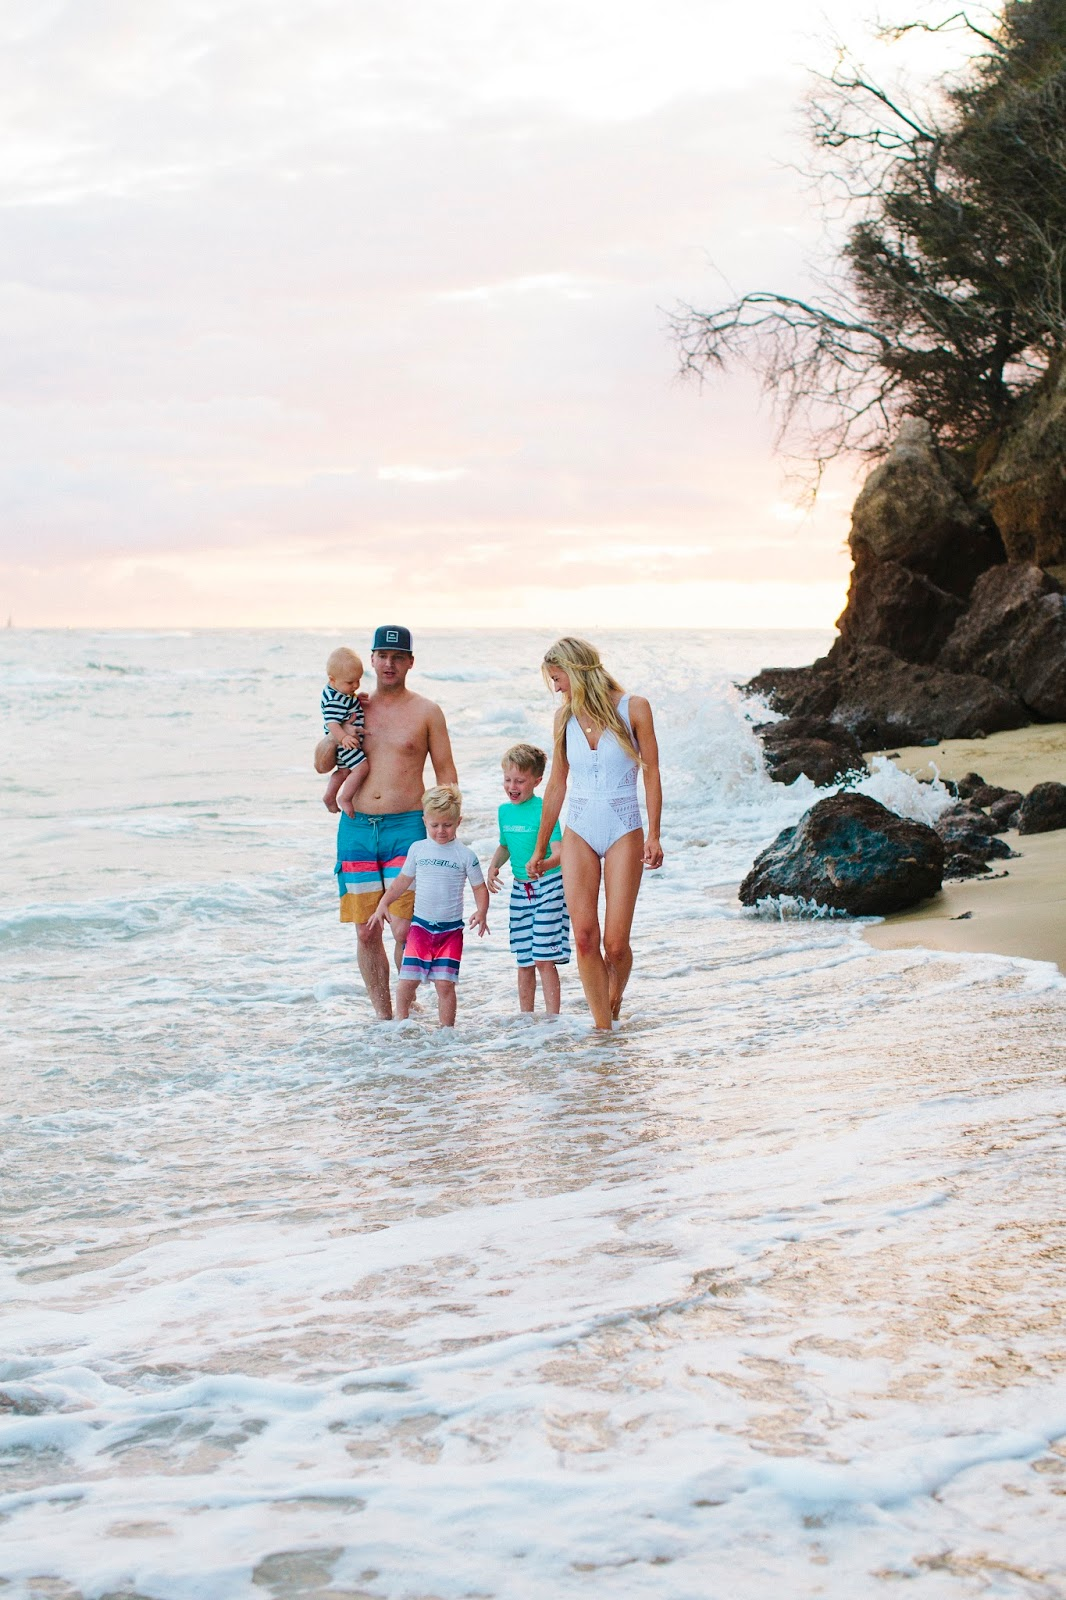 A FEW OF MY FAVORITE TRICKS FOR TRAVELING WITH KIDS (+ OUR HAWAII FAMILY PHOTOSHOOT)